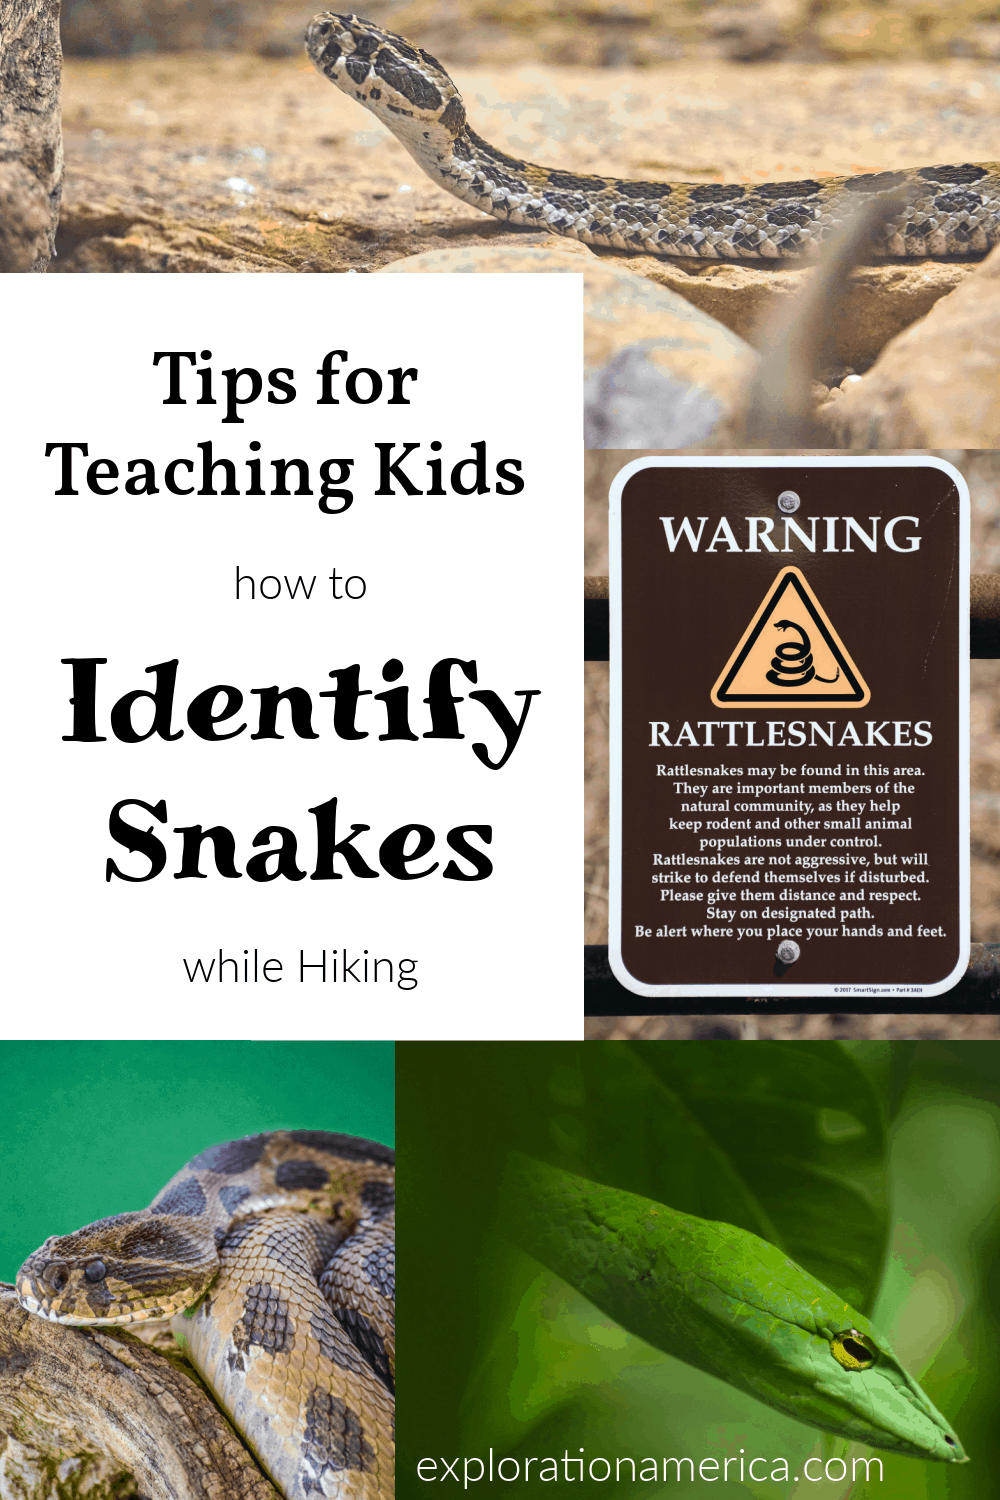 Tips for Teaching Kids to Identify Snakes when Hiking